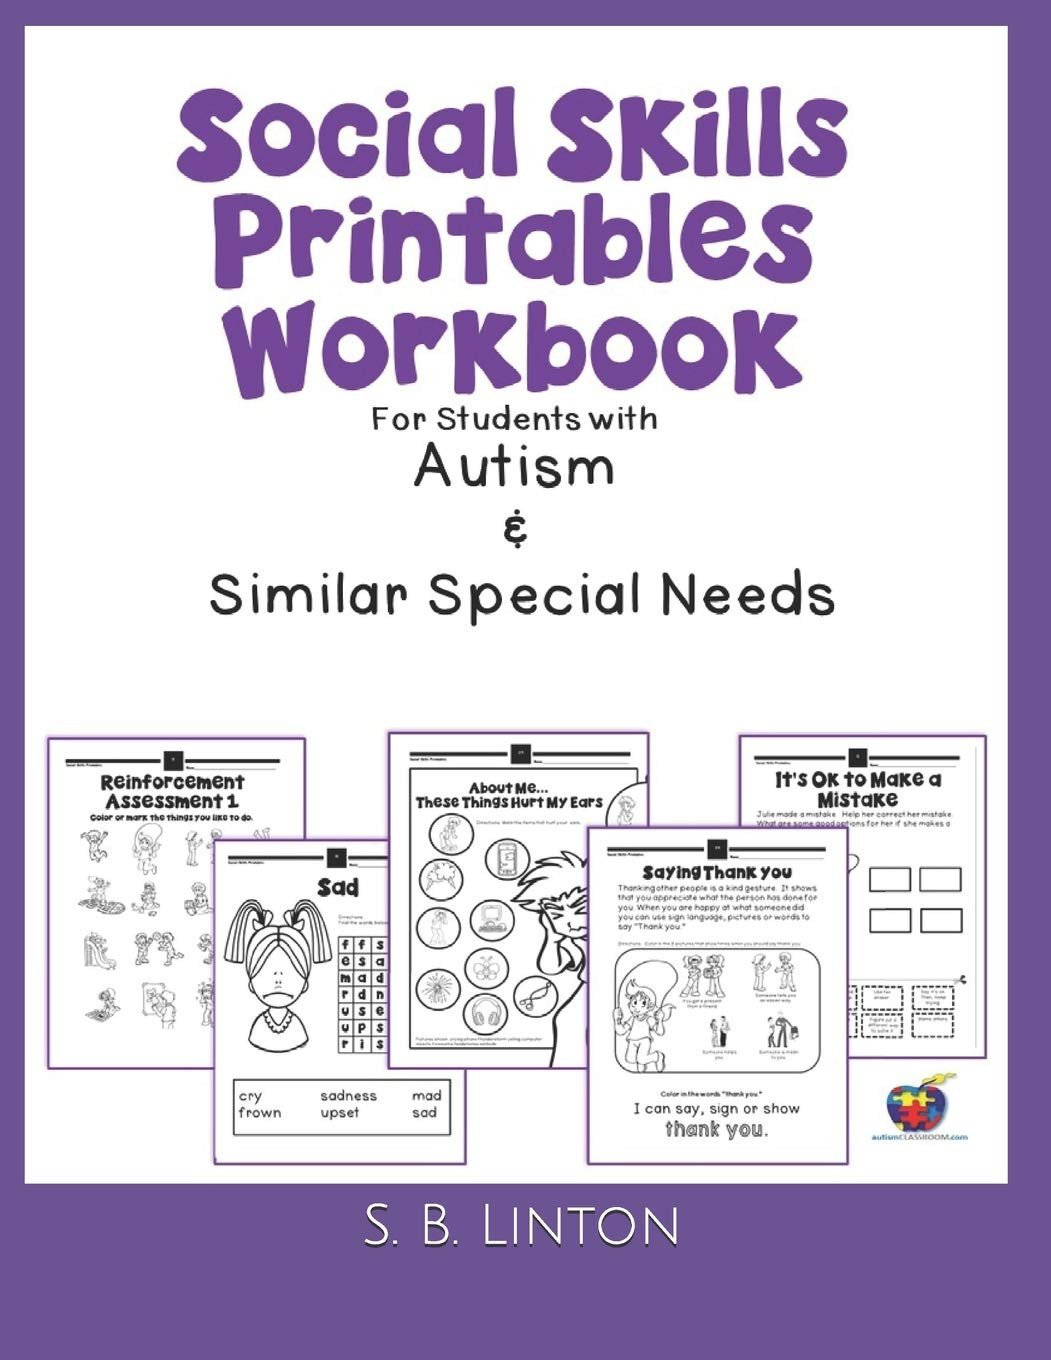 Social Skills Making Friends Worksheets social Skills Printables Workbook for Students with Autism